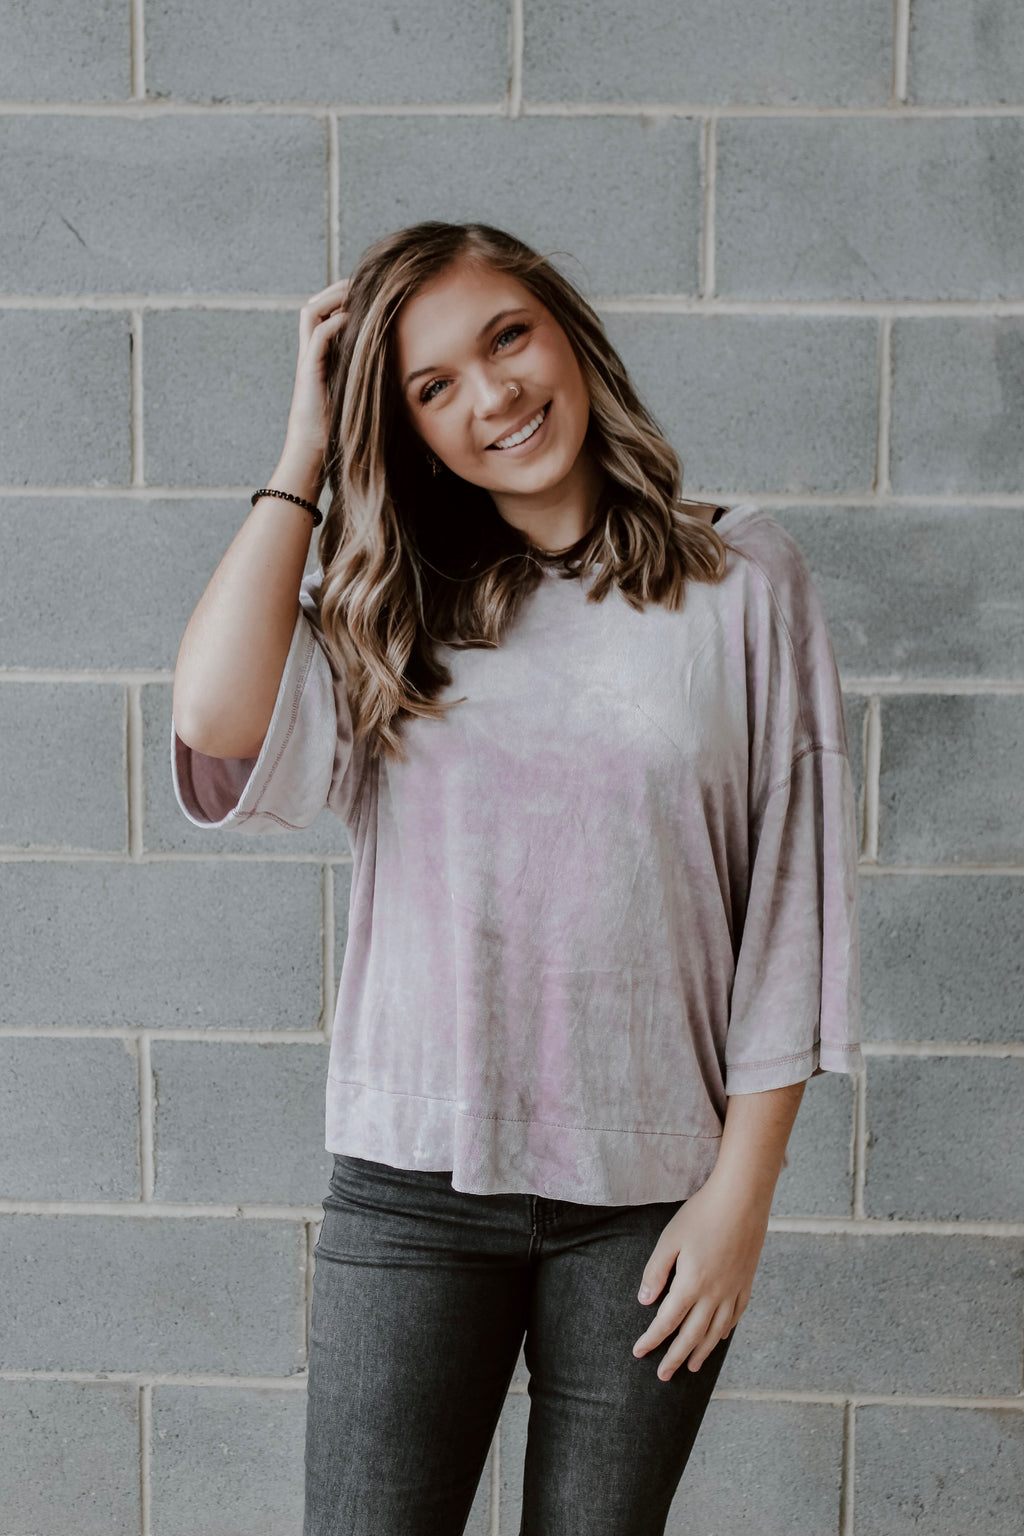 FREE PEOPLE VELVET TEDDY TOP